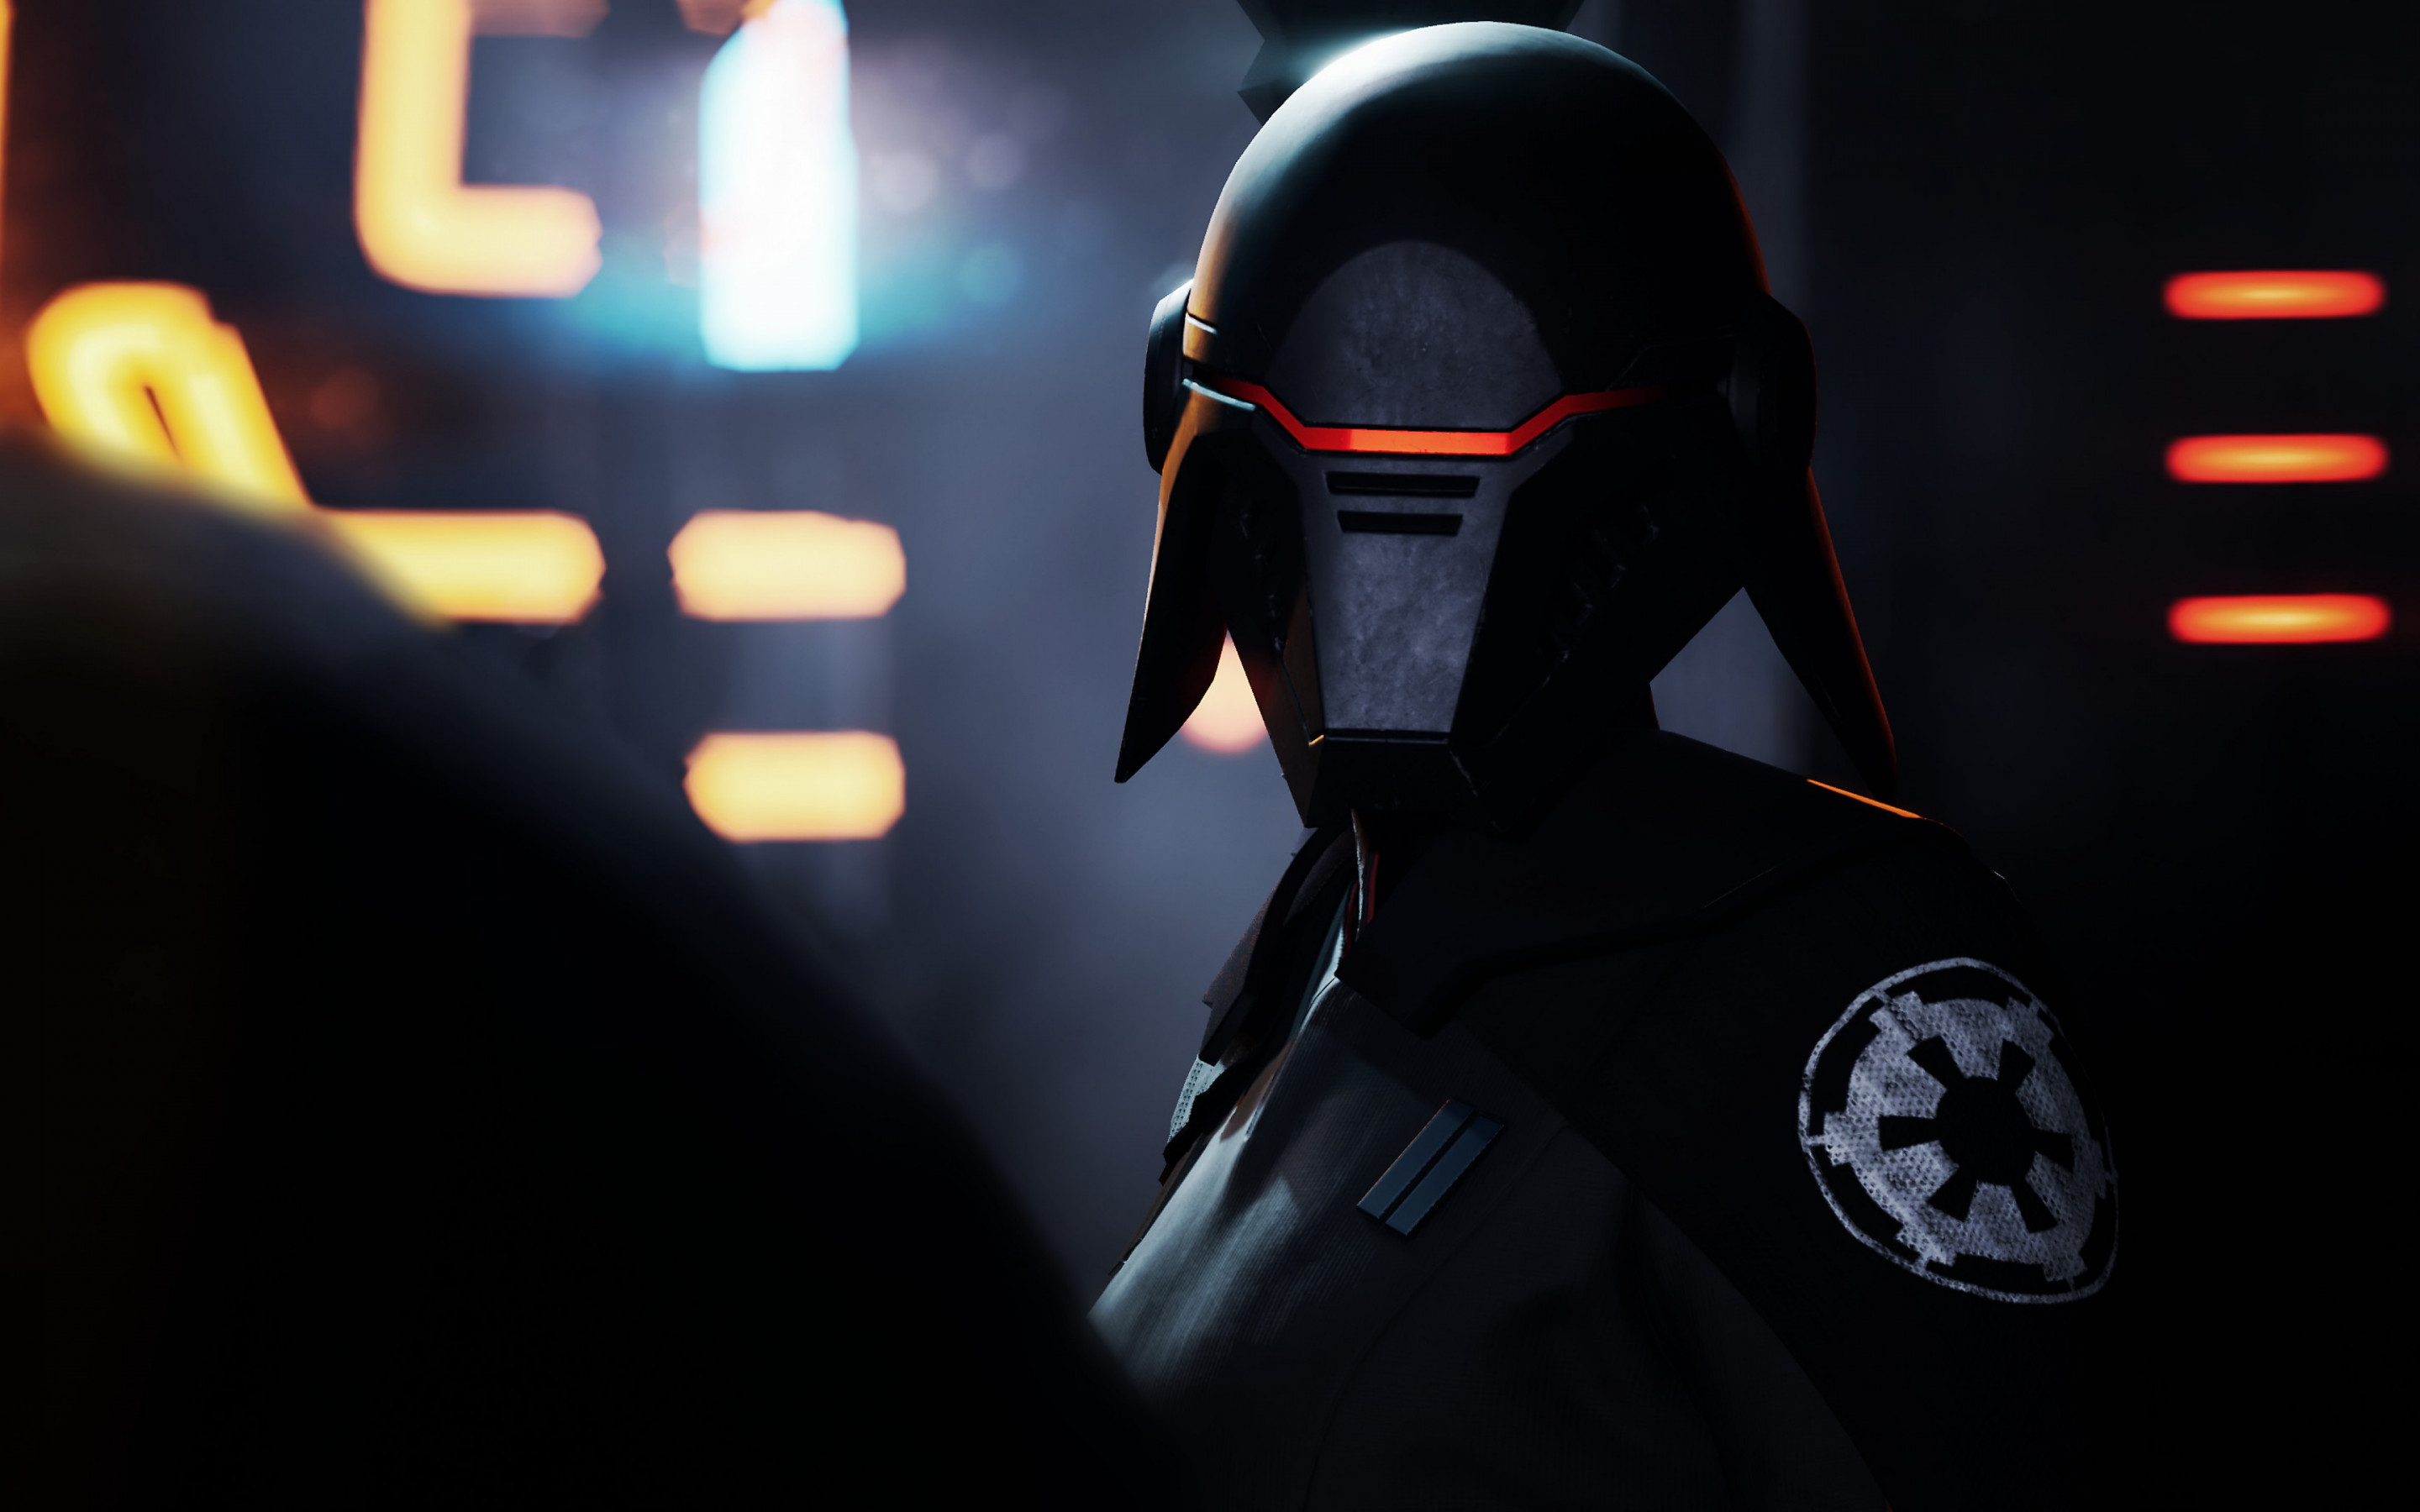 Star Wars Jedi: Fallen Order soldier wallpaper 2880x1800